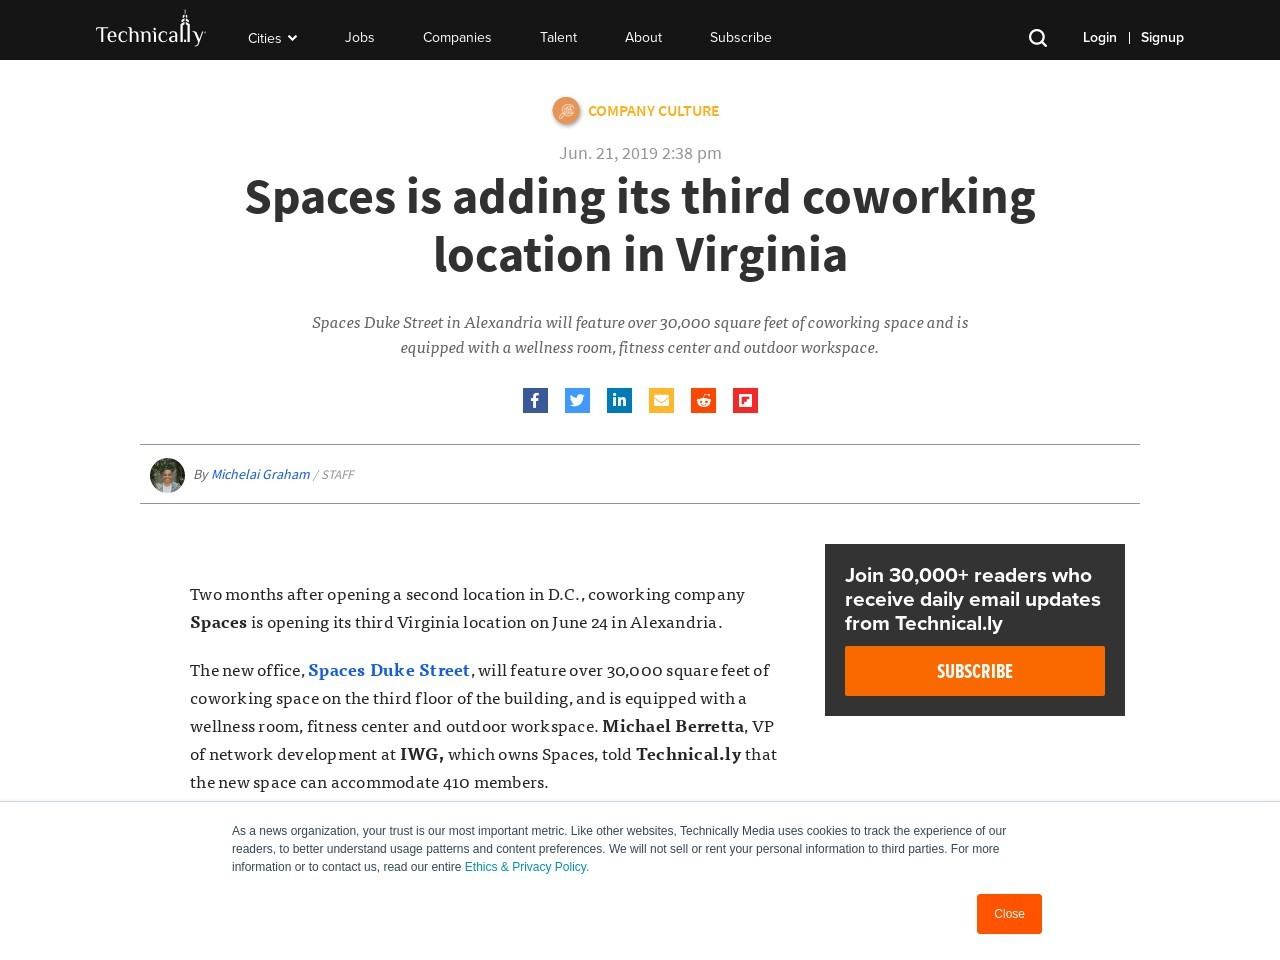 Spaces is adding its third coworking location in Virginia